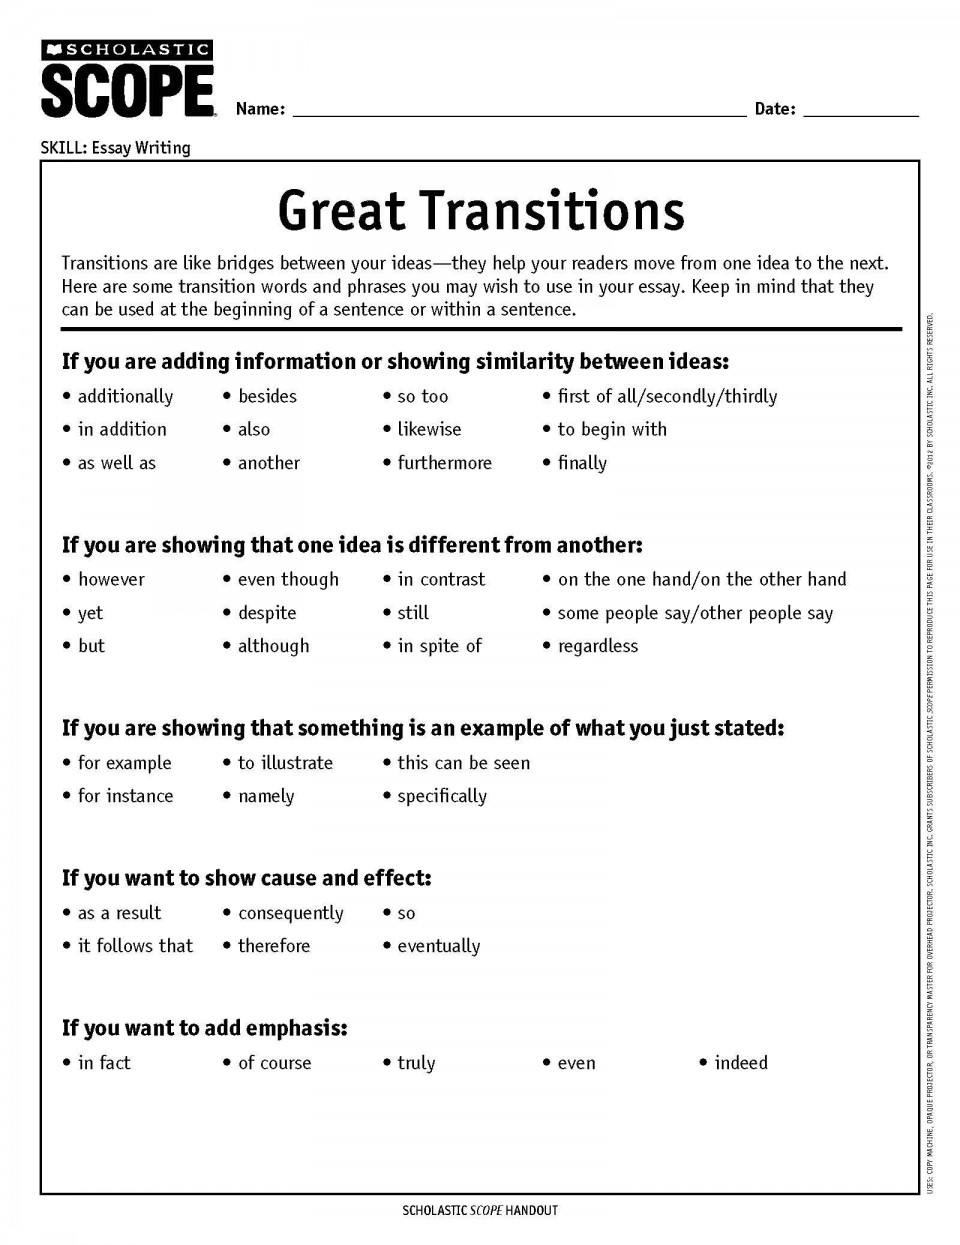 019 Essay Example Transitions How To Choose The Perfect Transition Word Or Phrase Writing Words For An List Of Transitional Essays Pdf Archaicawful Sentence Examples And Phrases 960